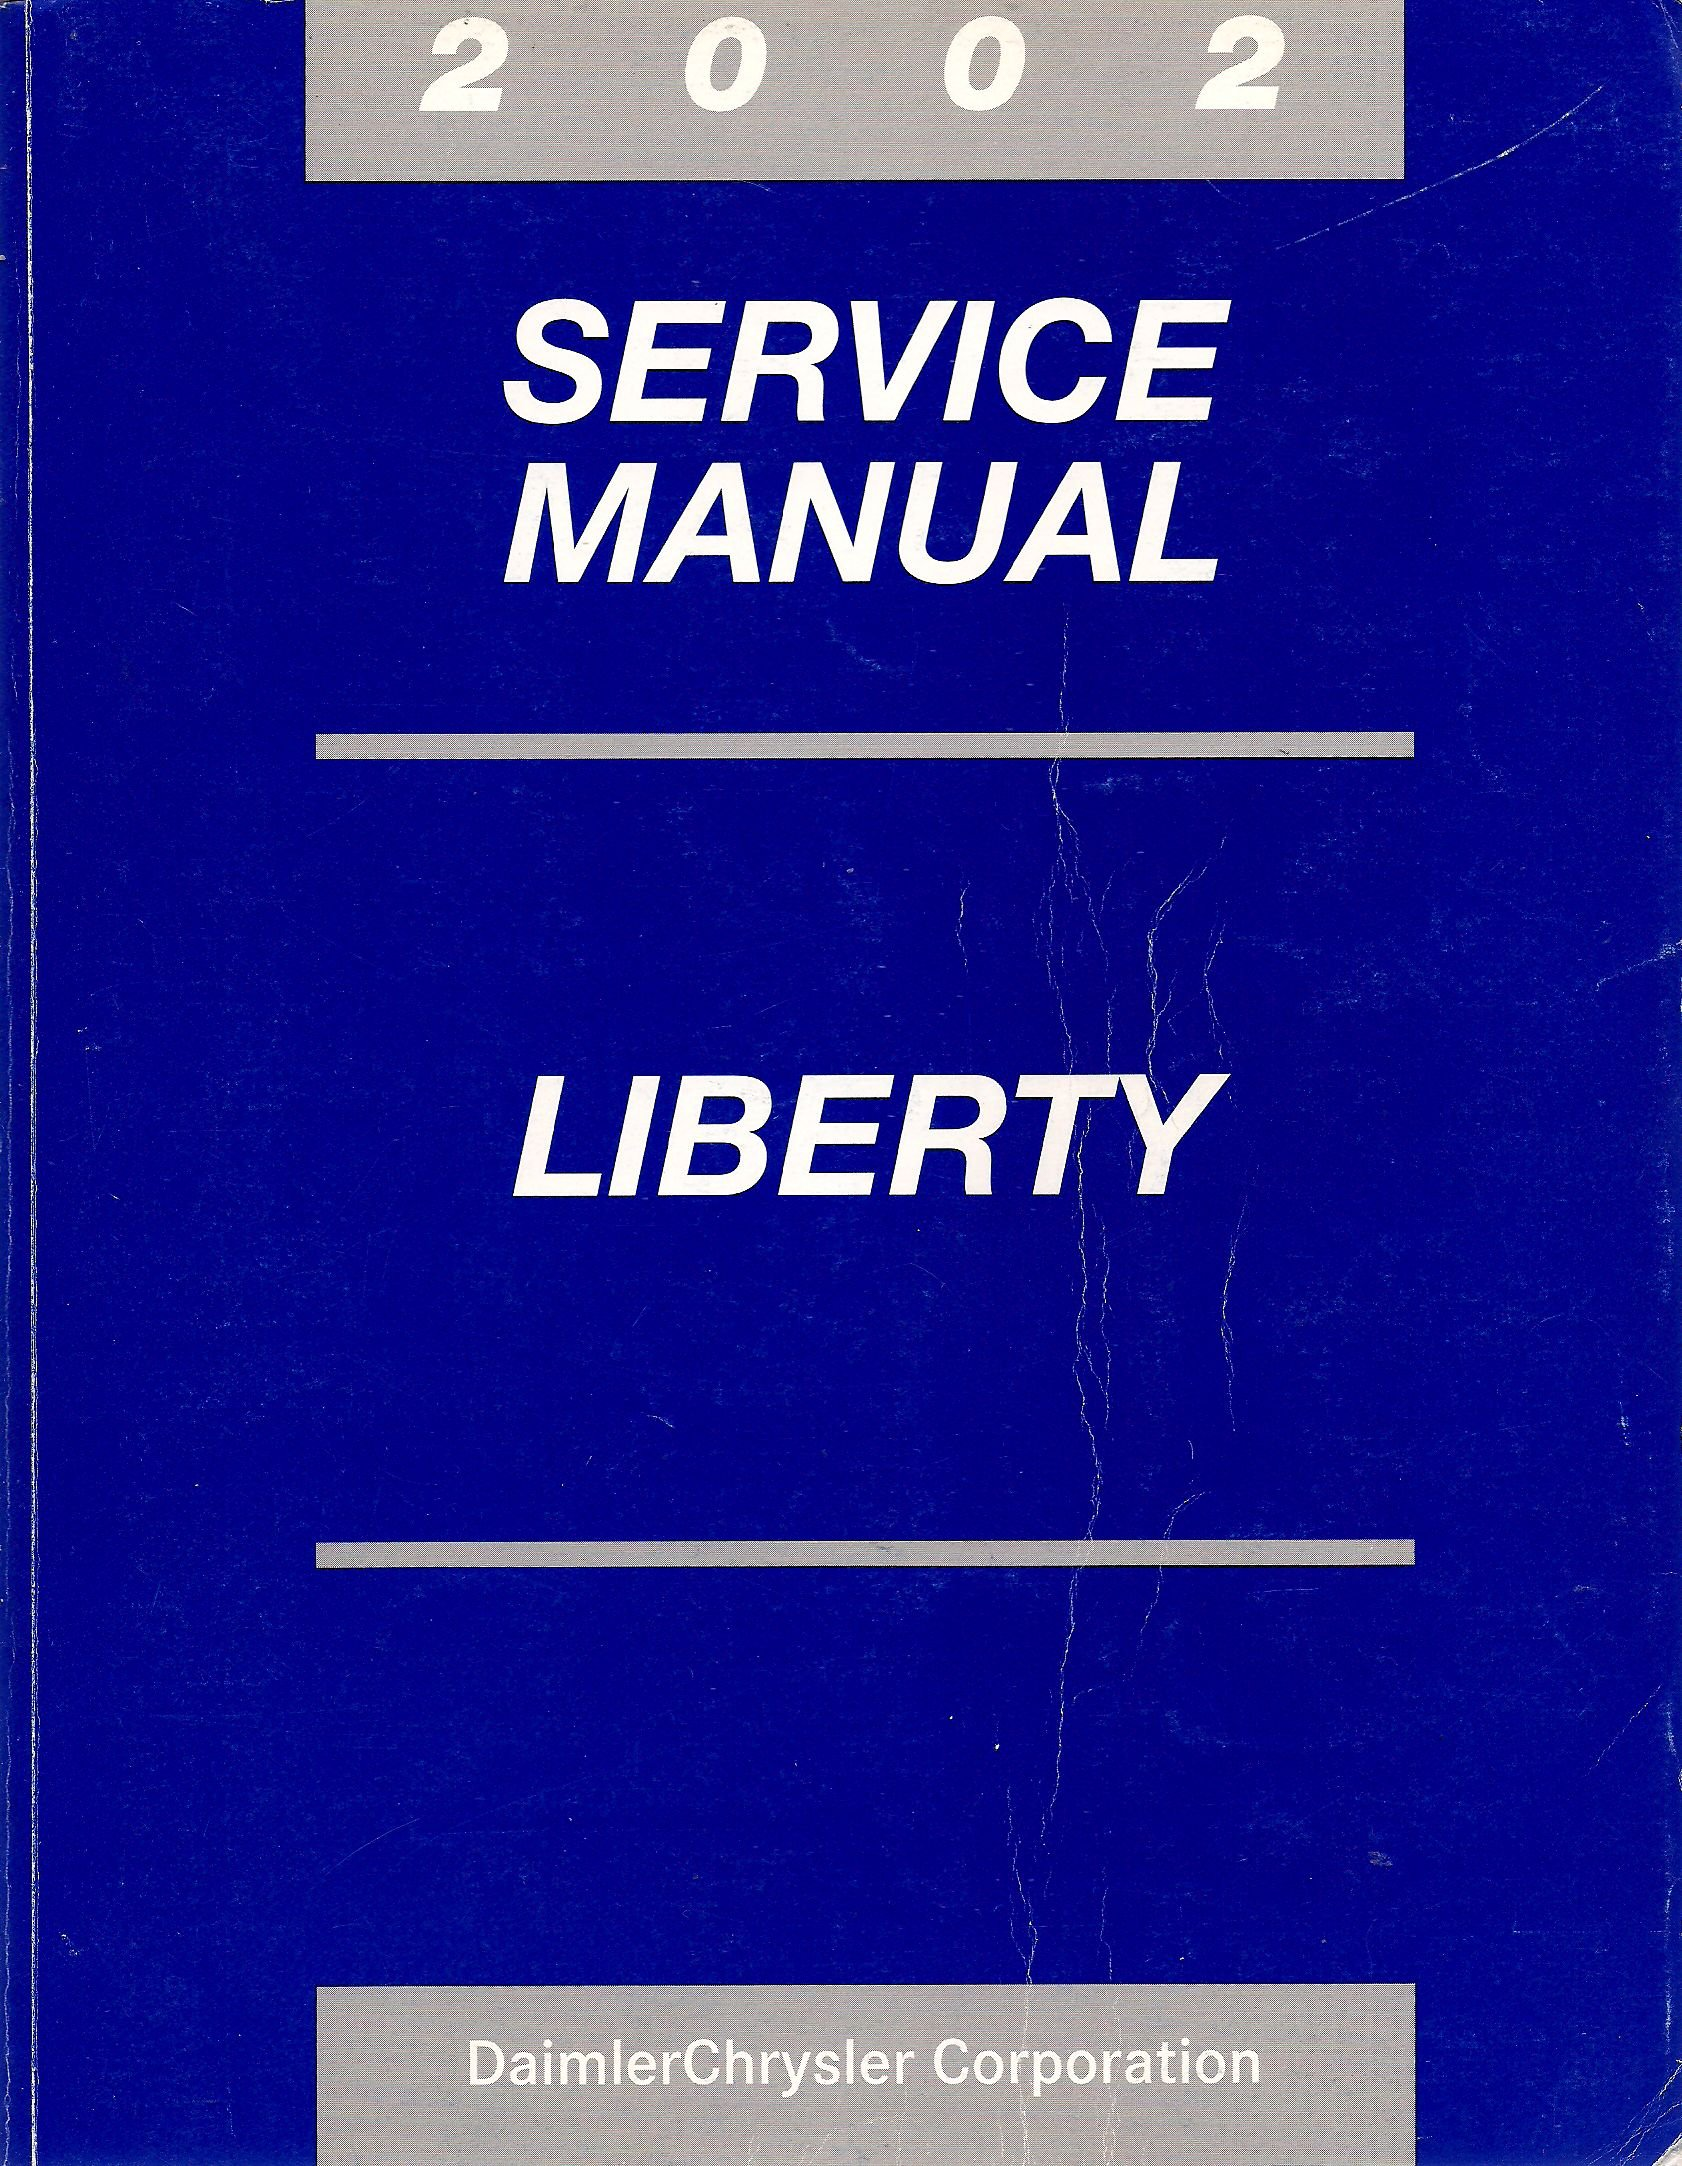 2002 jeep liberty factory service manual daimlerchrysler rh amazon com 2002 jeep  liberty factory service manual 2002 jeep liberty service manual pdf free